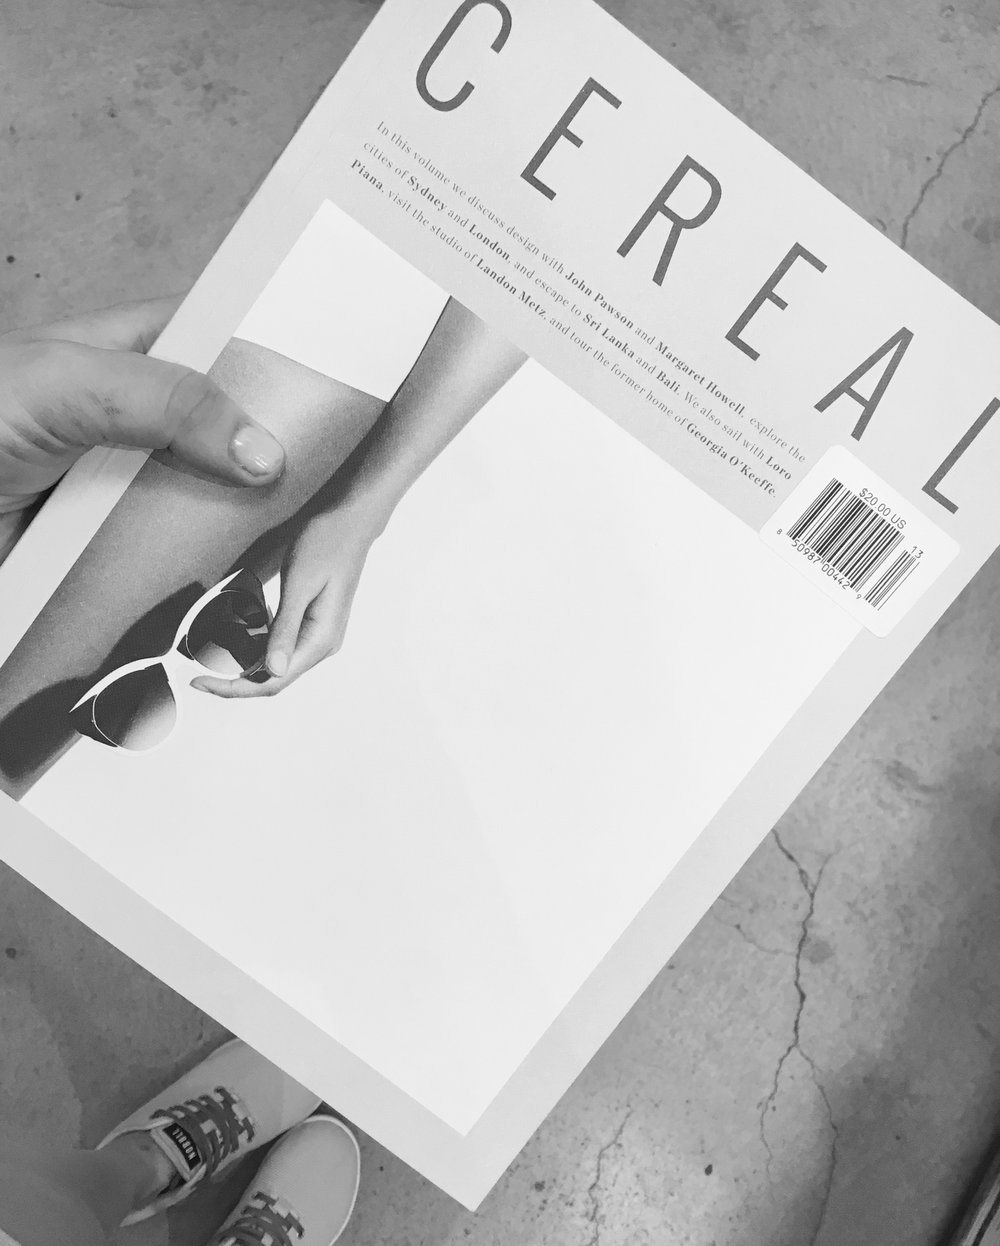 I kind love well-designed indie magazines and I had to get it to add to my collection of now ... a whole three magazines.   https://readcereal.com